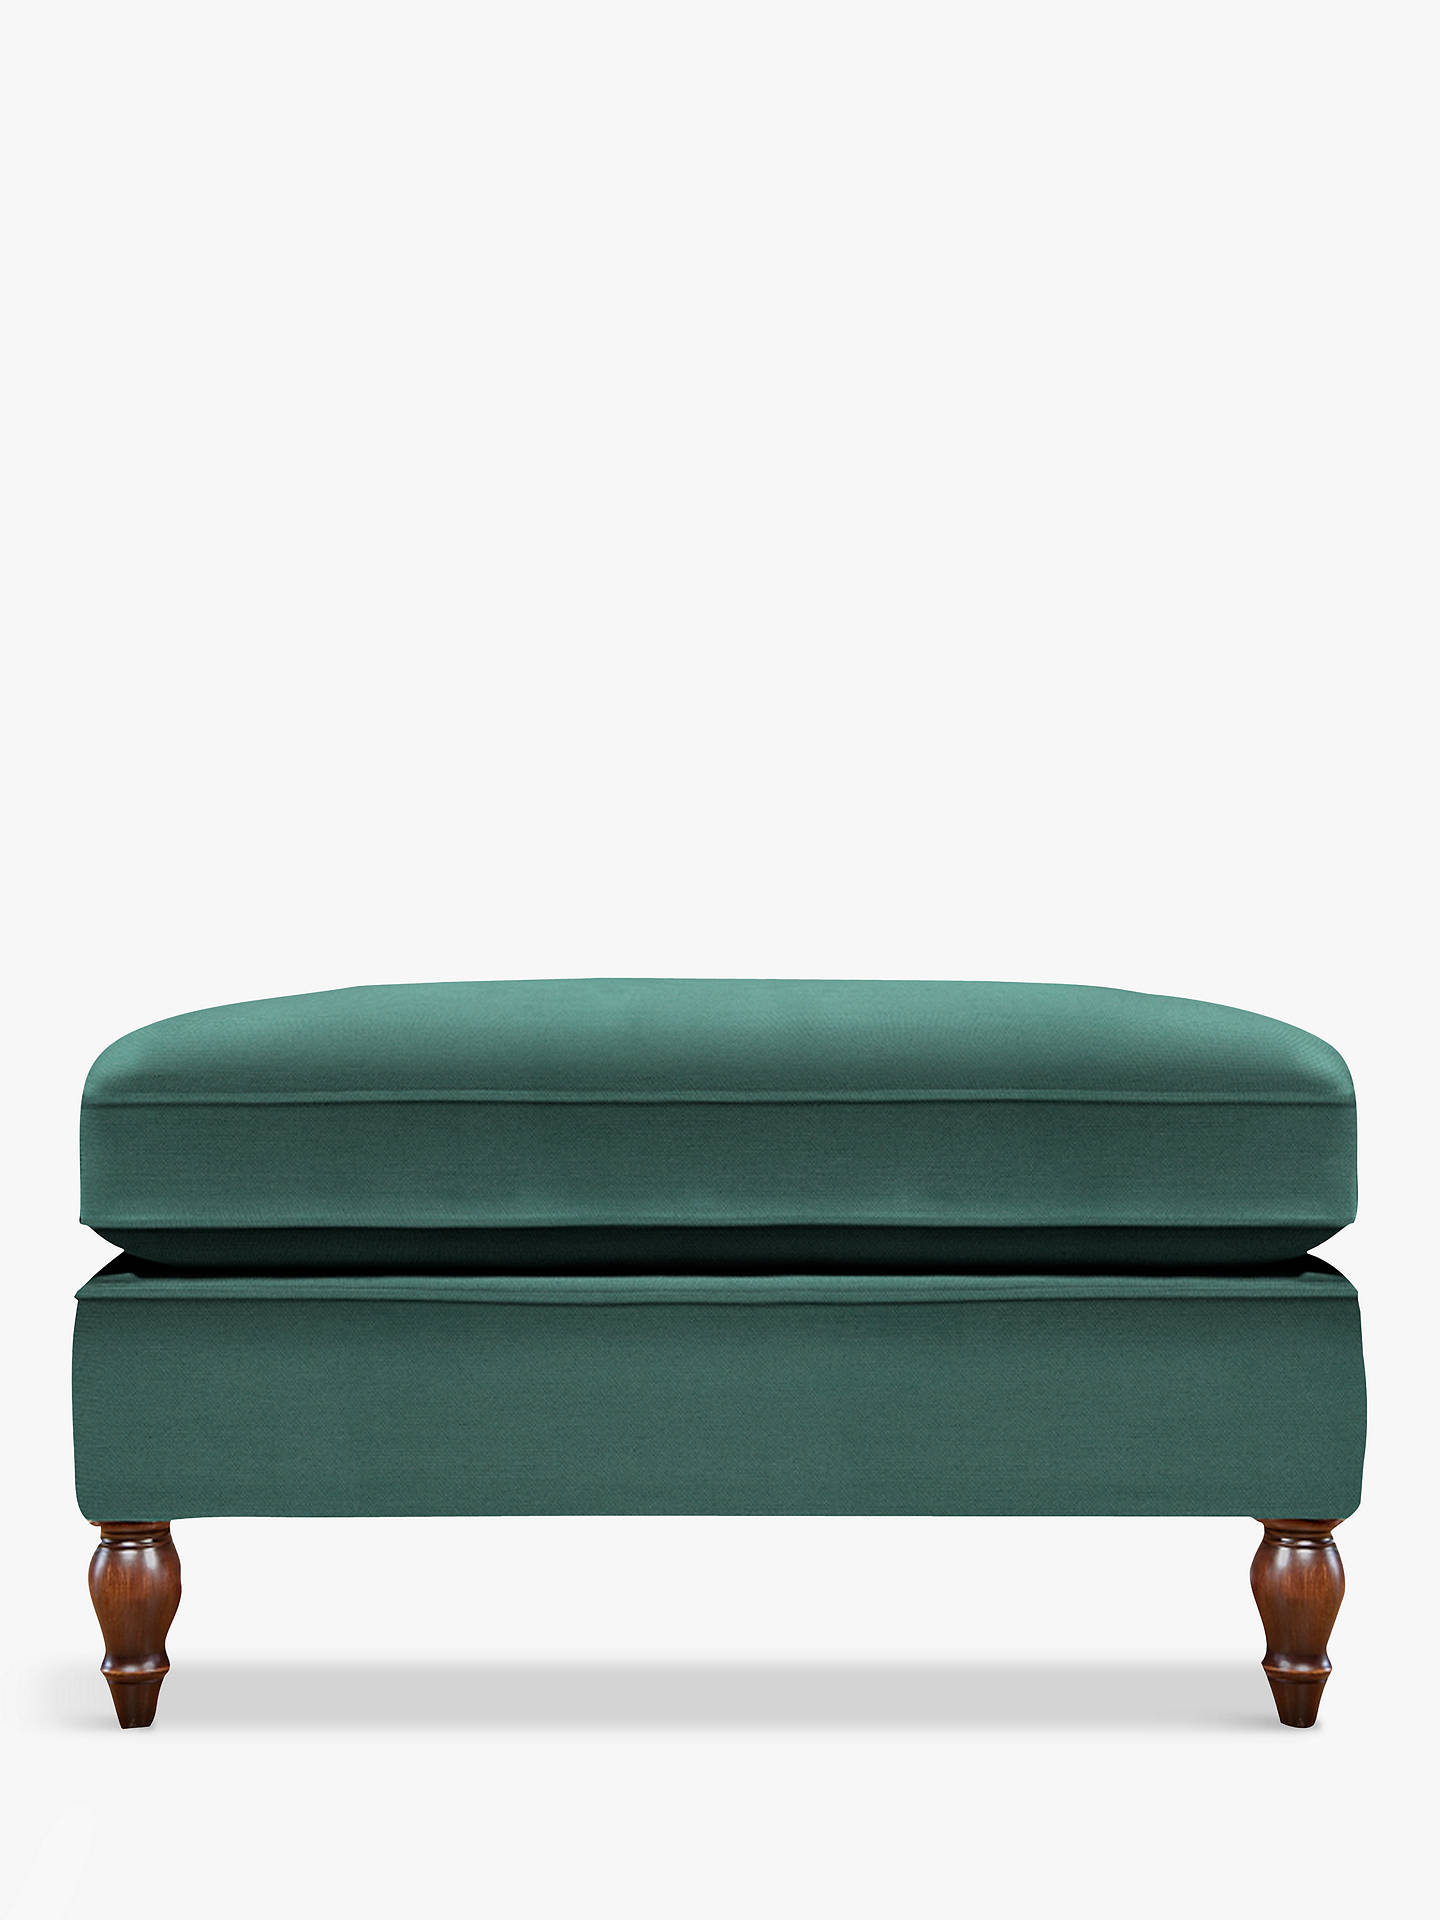 BuyDuresta Vaughan Footstool, Umber Leg, Canterbury Linen Teal Green Online at johnlewis.com